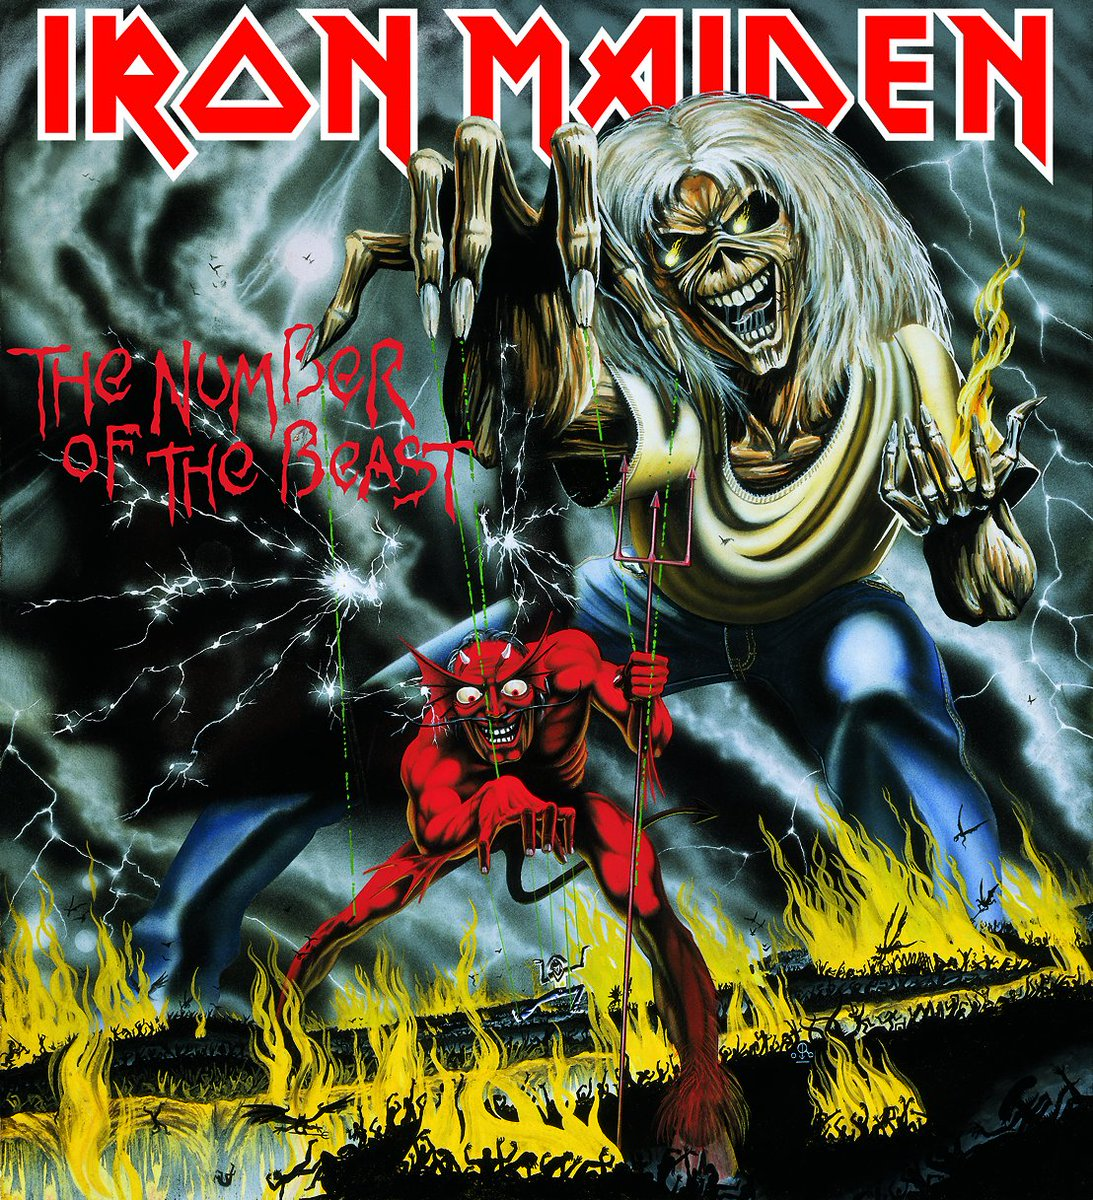 #MusicMonday - Part 1   It was NOTB's birthday yesterday - Tell us your favourite track from the album in the comments below (and explain why)!  #IronMaiden #TheNumberOfTheBeast #Album #BelatedHappyBirthday